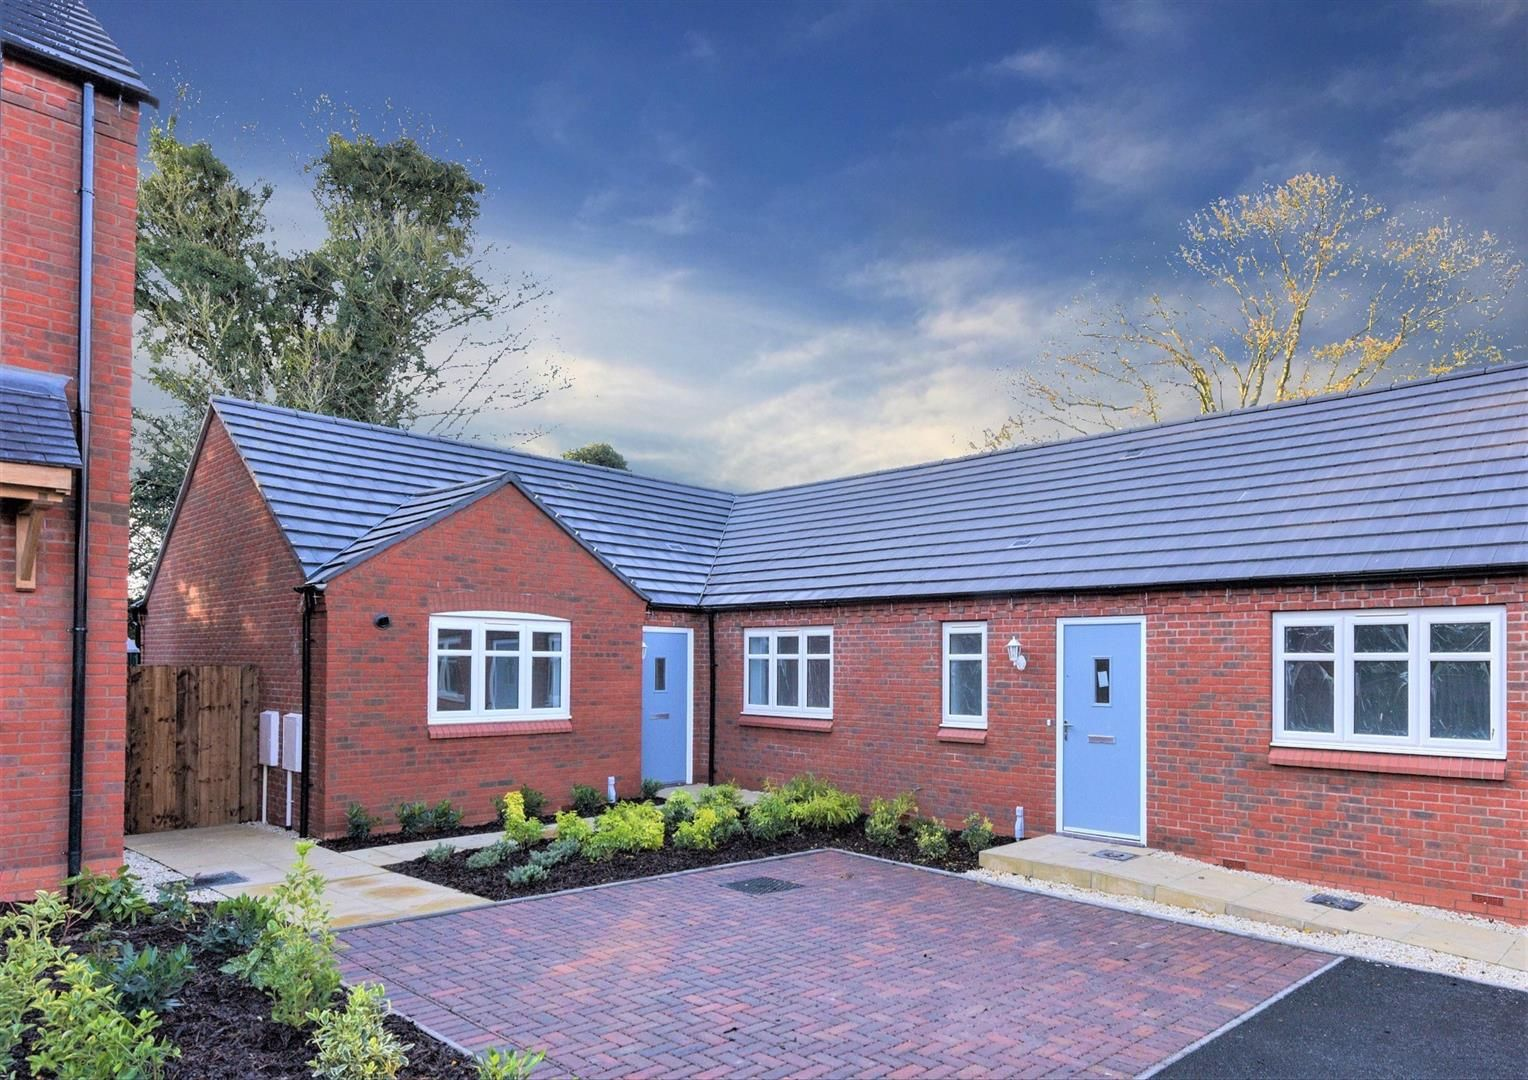 2 bed semi-detached-bungalow for sale, DY9